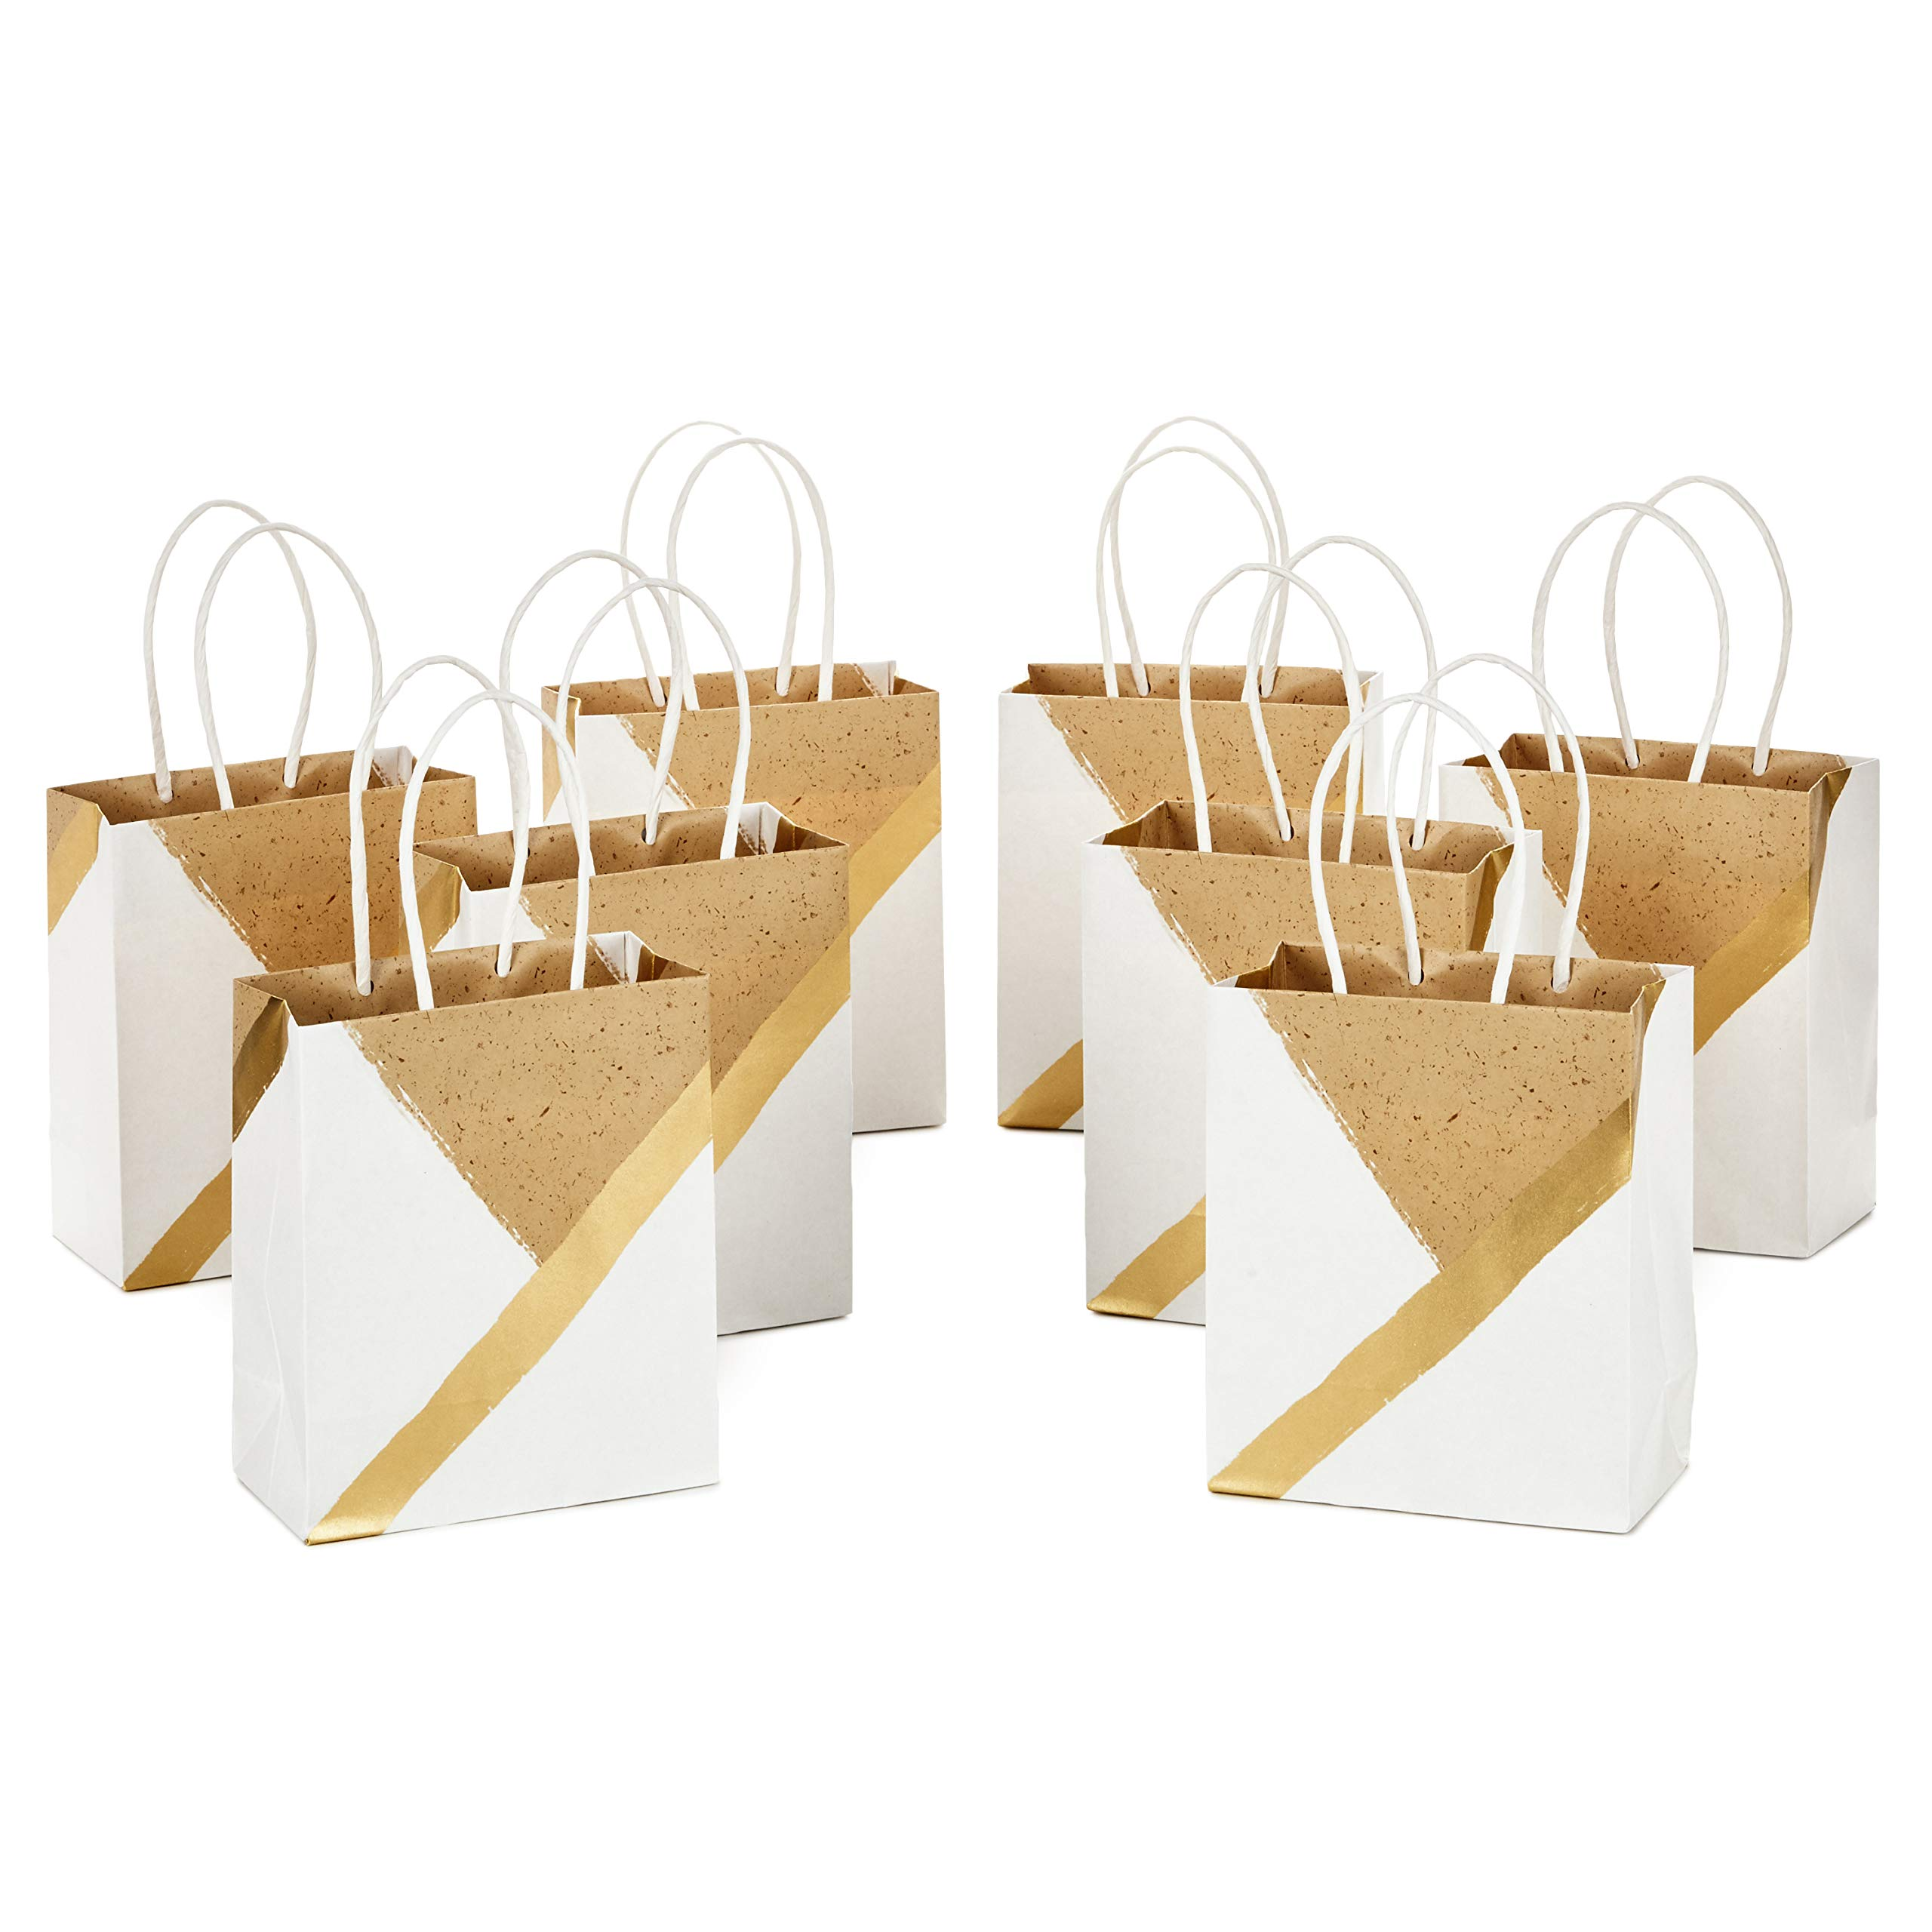 """Hallmark 6"""" Small Paper Gift Bags (Pack of 8 - White and Kraft) for Birthdays, Weddings, Graduations, Baby Showers, Bridal Showers, Care Packages, May Day"""